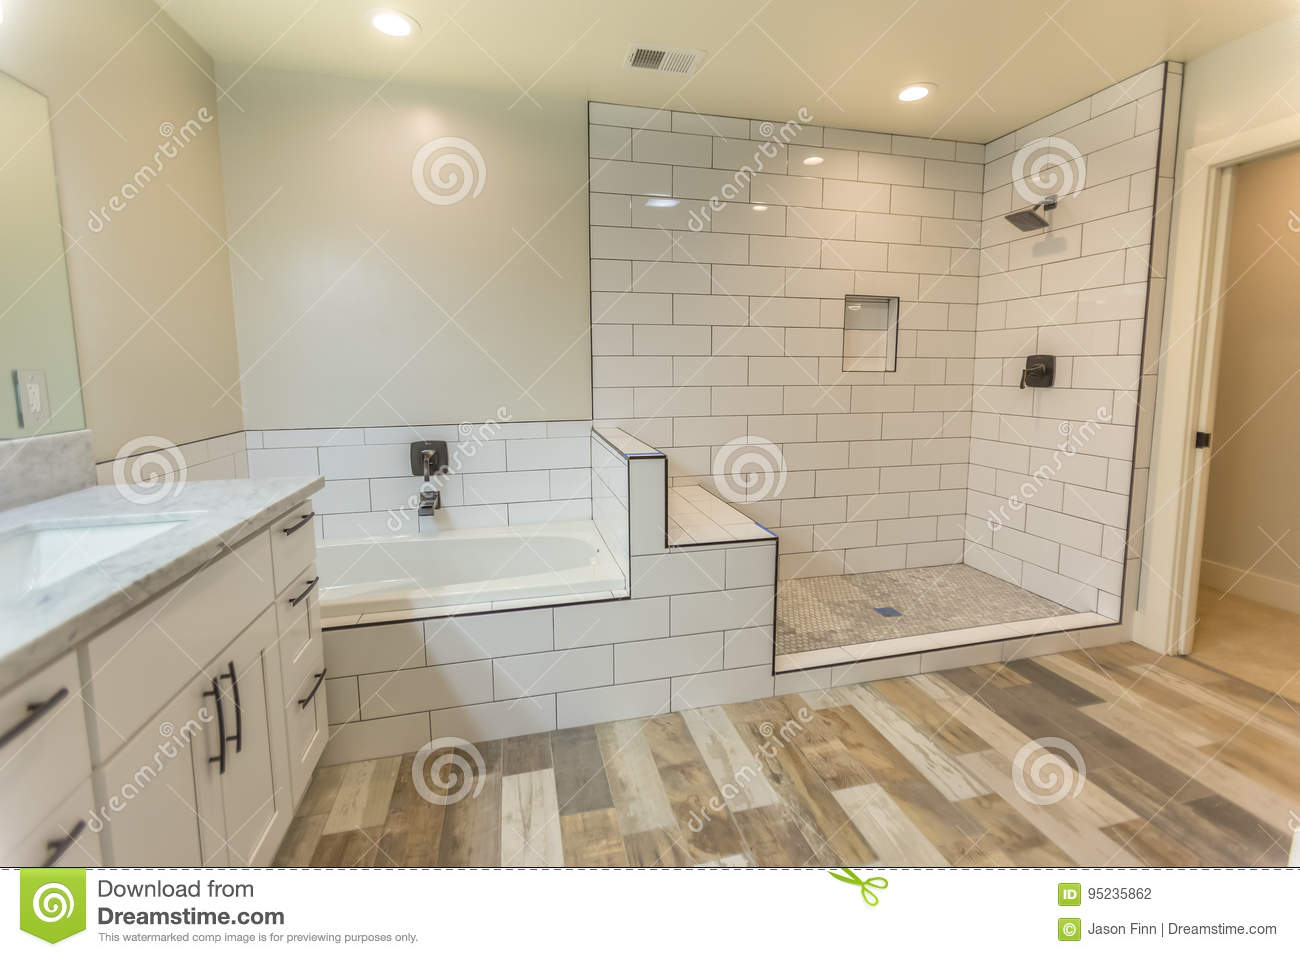 Clean Spacious Master Bedroom Bathroom With Shower And Tub